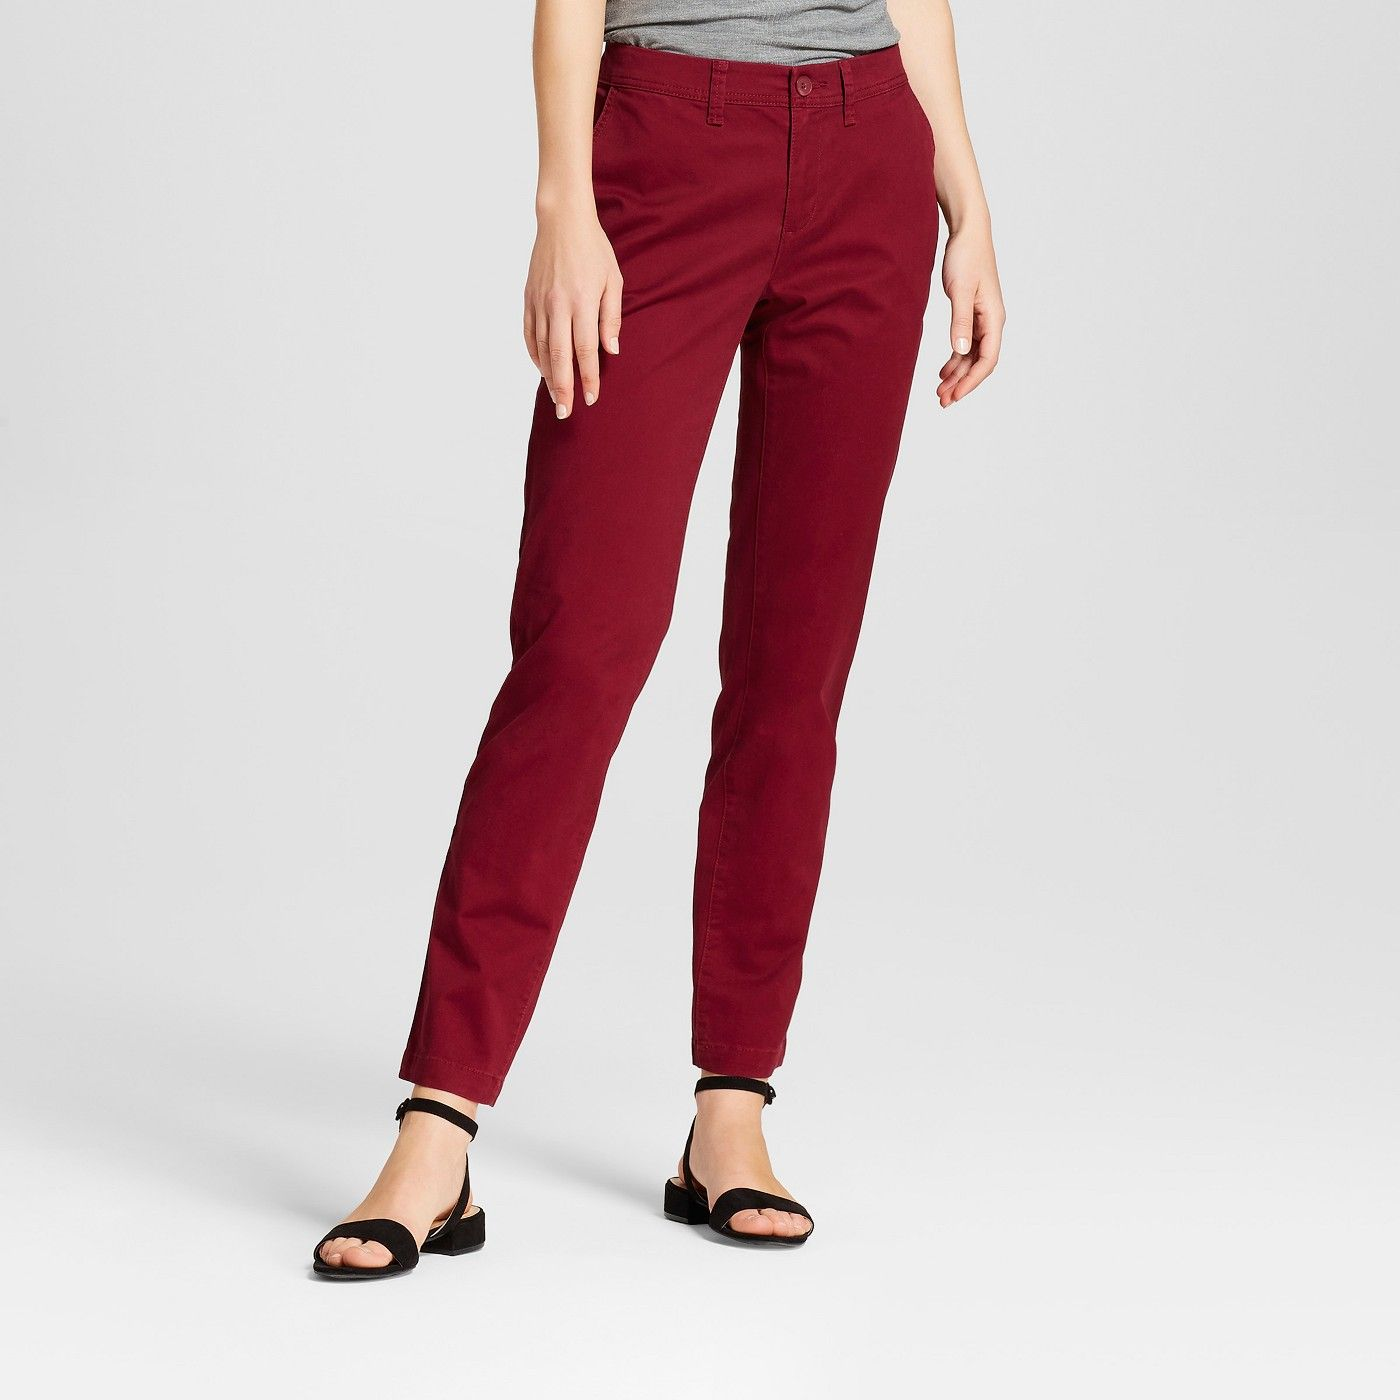 Women S Slim Chino Pants A New Day Image 1 Of 3 Slim Chino Pants Slim Chinos Slim Fit Chino Pants